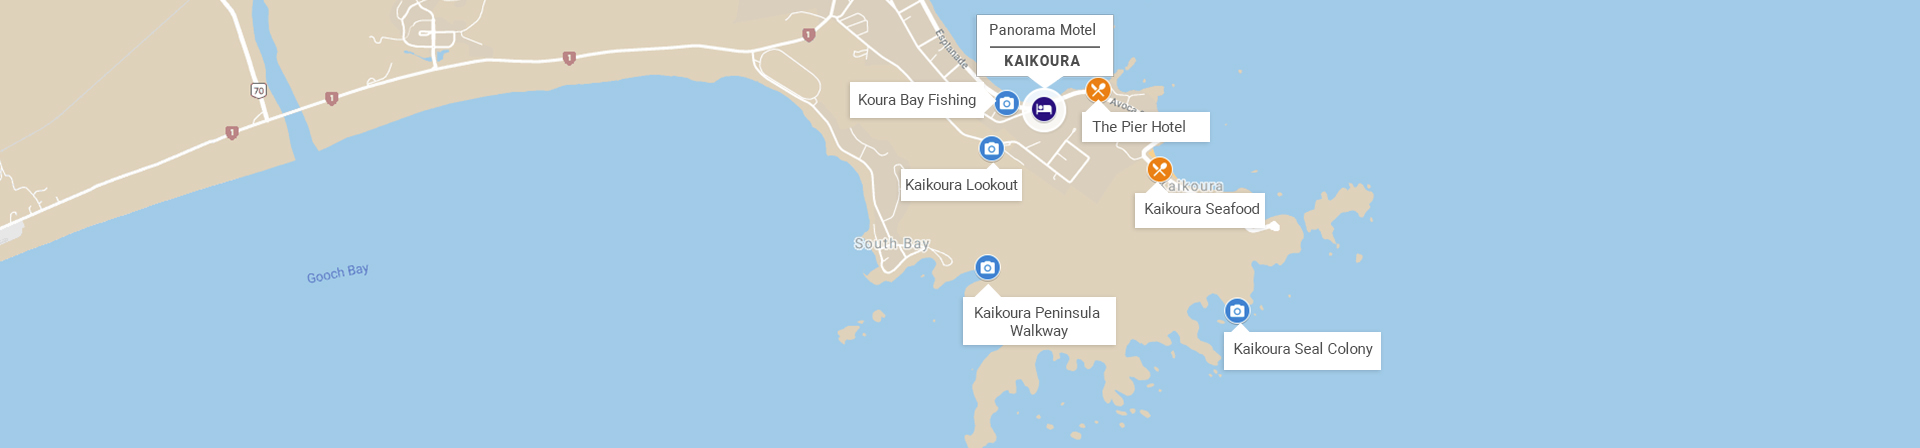 KaiKoura Motel Location